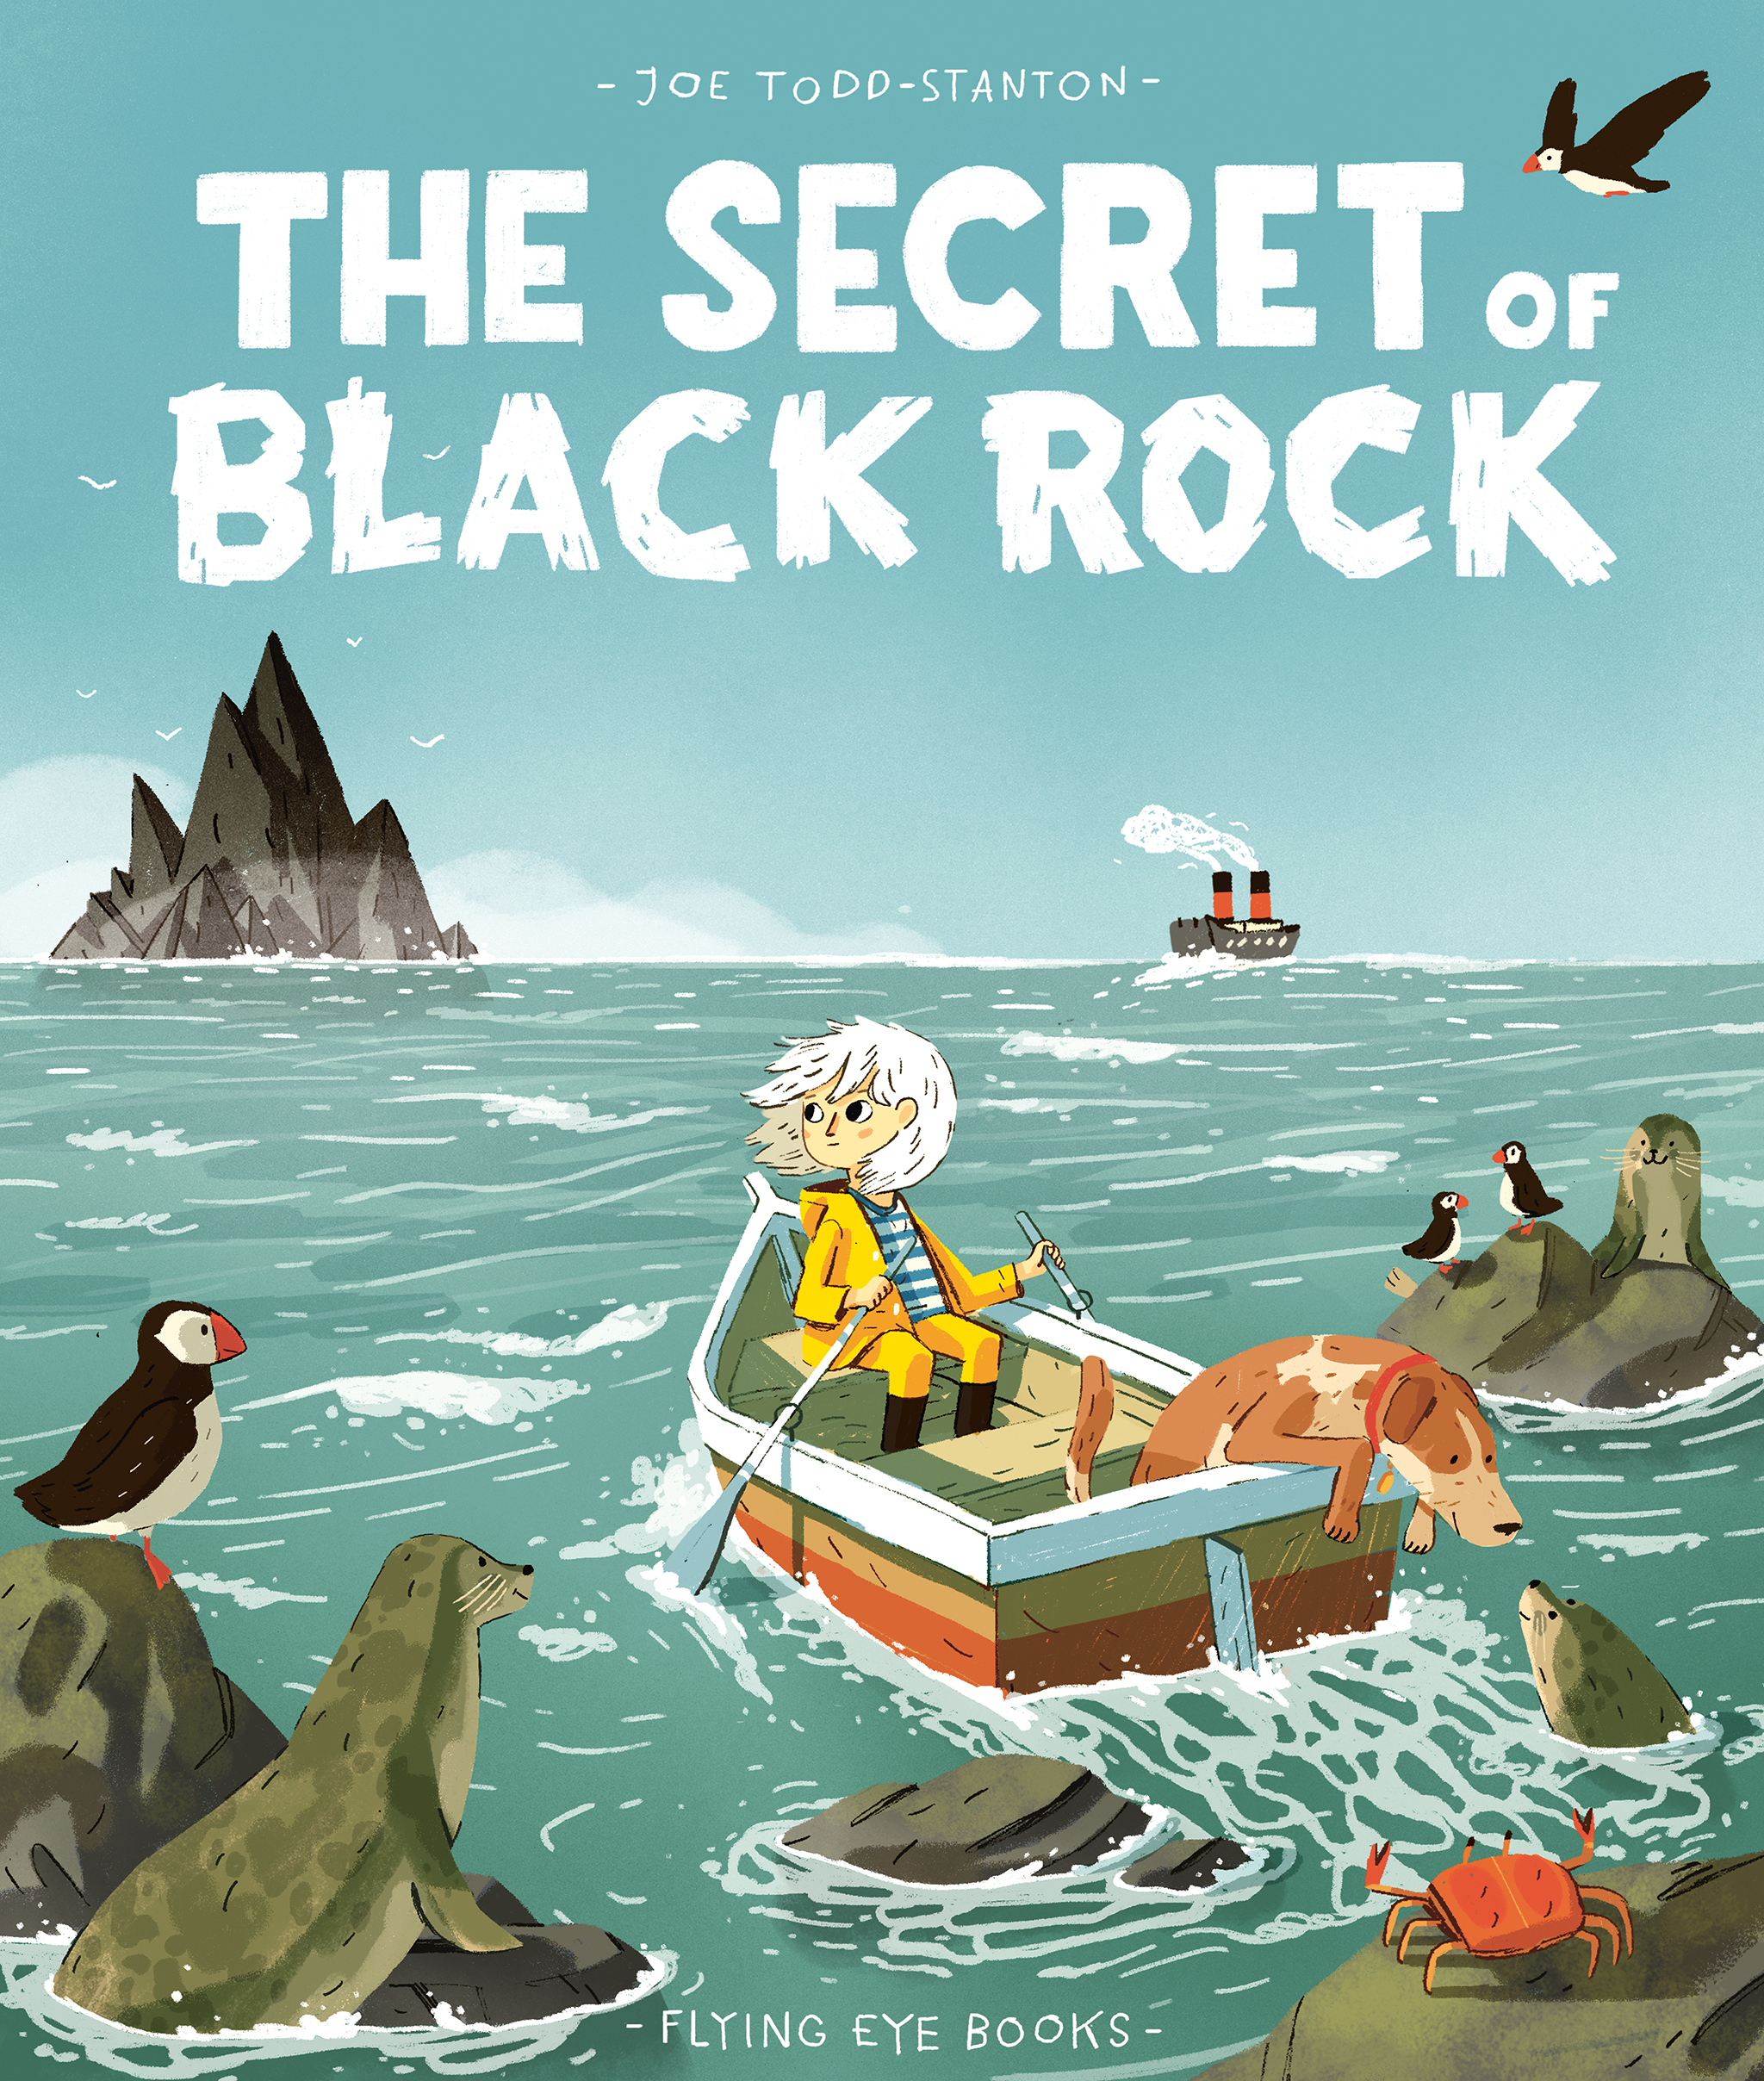 The Secret of Black Rock